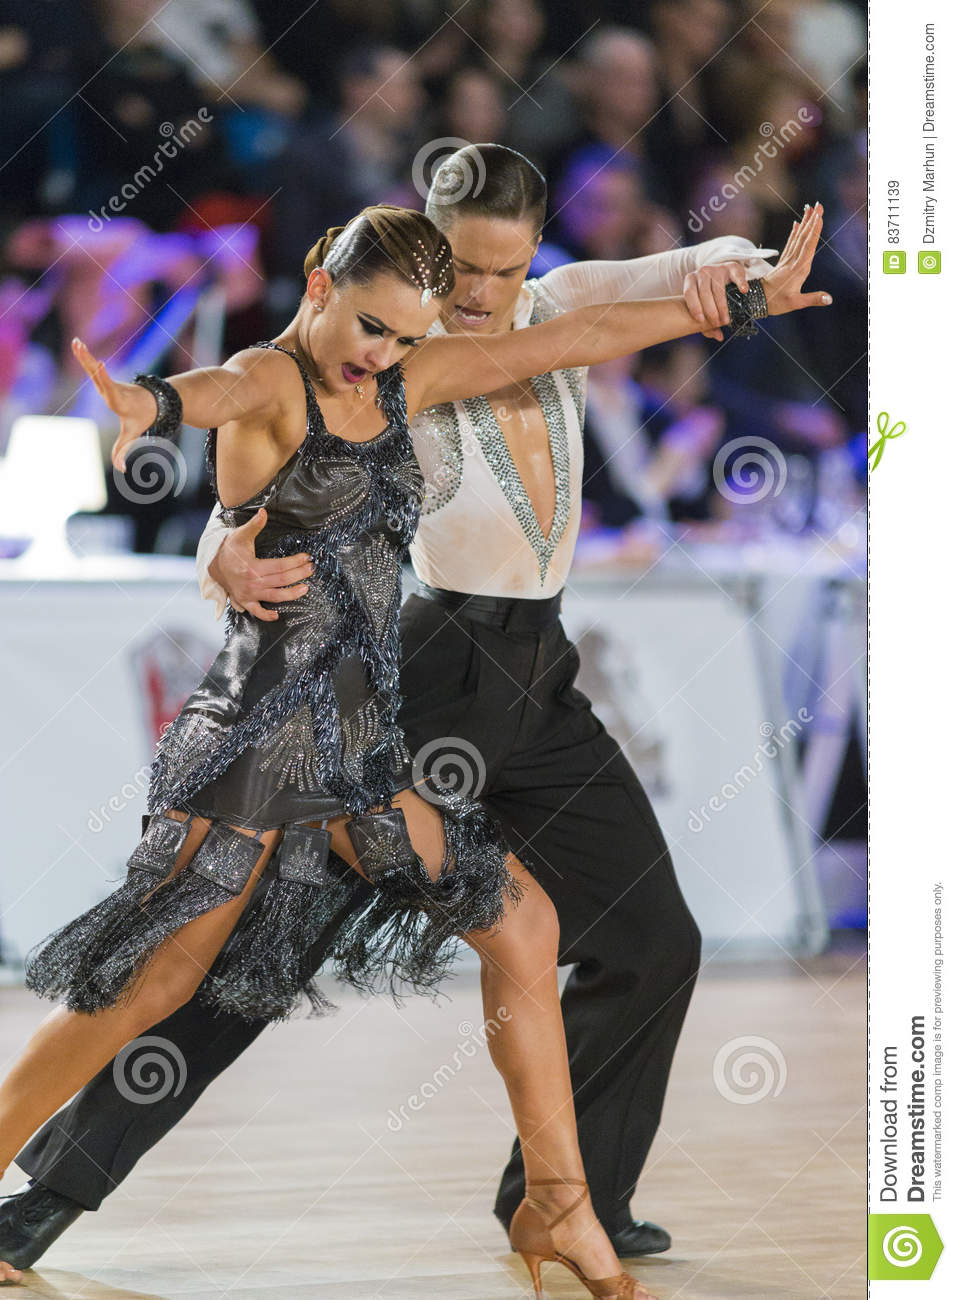 Adult Dance Couple Performs Youth Latin-American Program On The WDSF Baltic Grand Prix-2106 Championship Editorial Stock Image